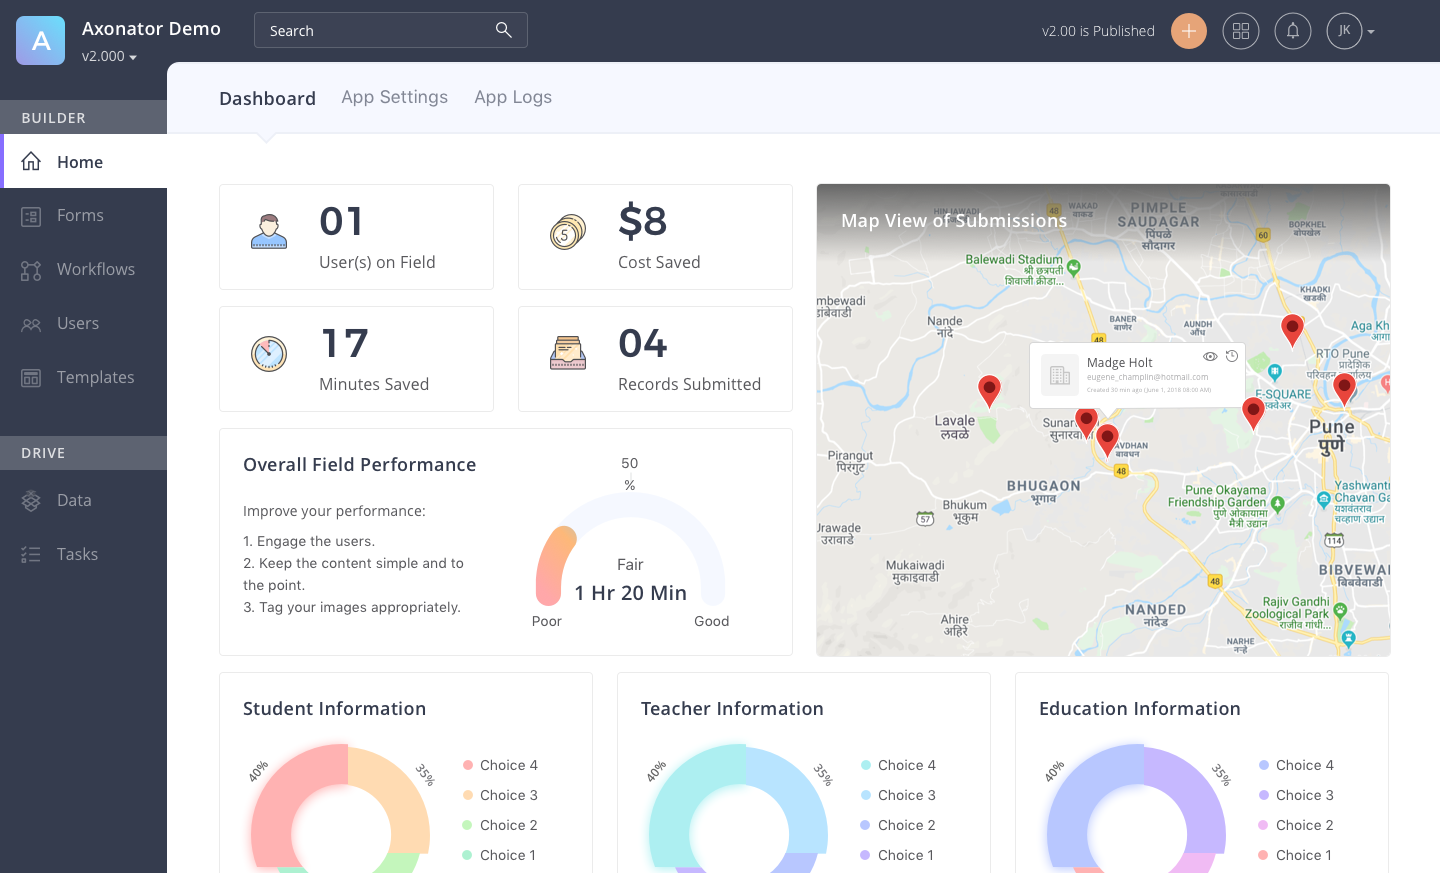 The dashboard allows users to monitor and track data collection in real time